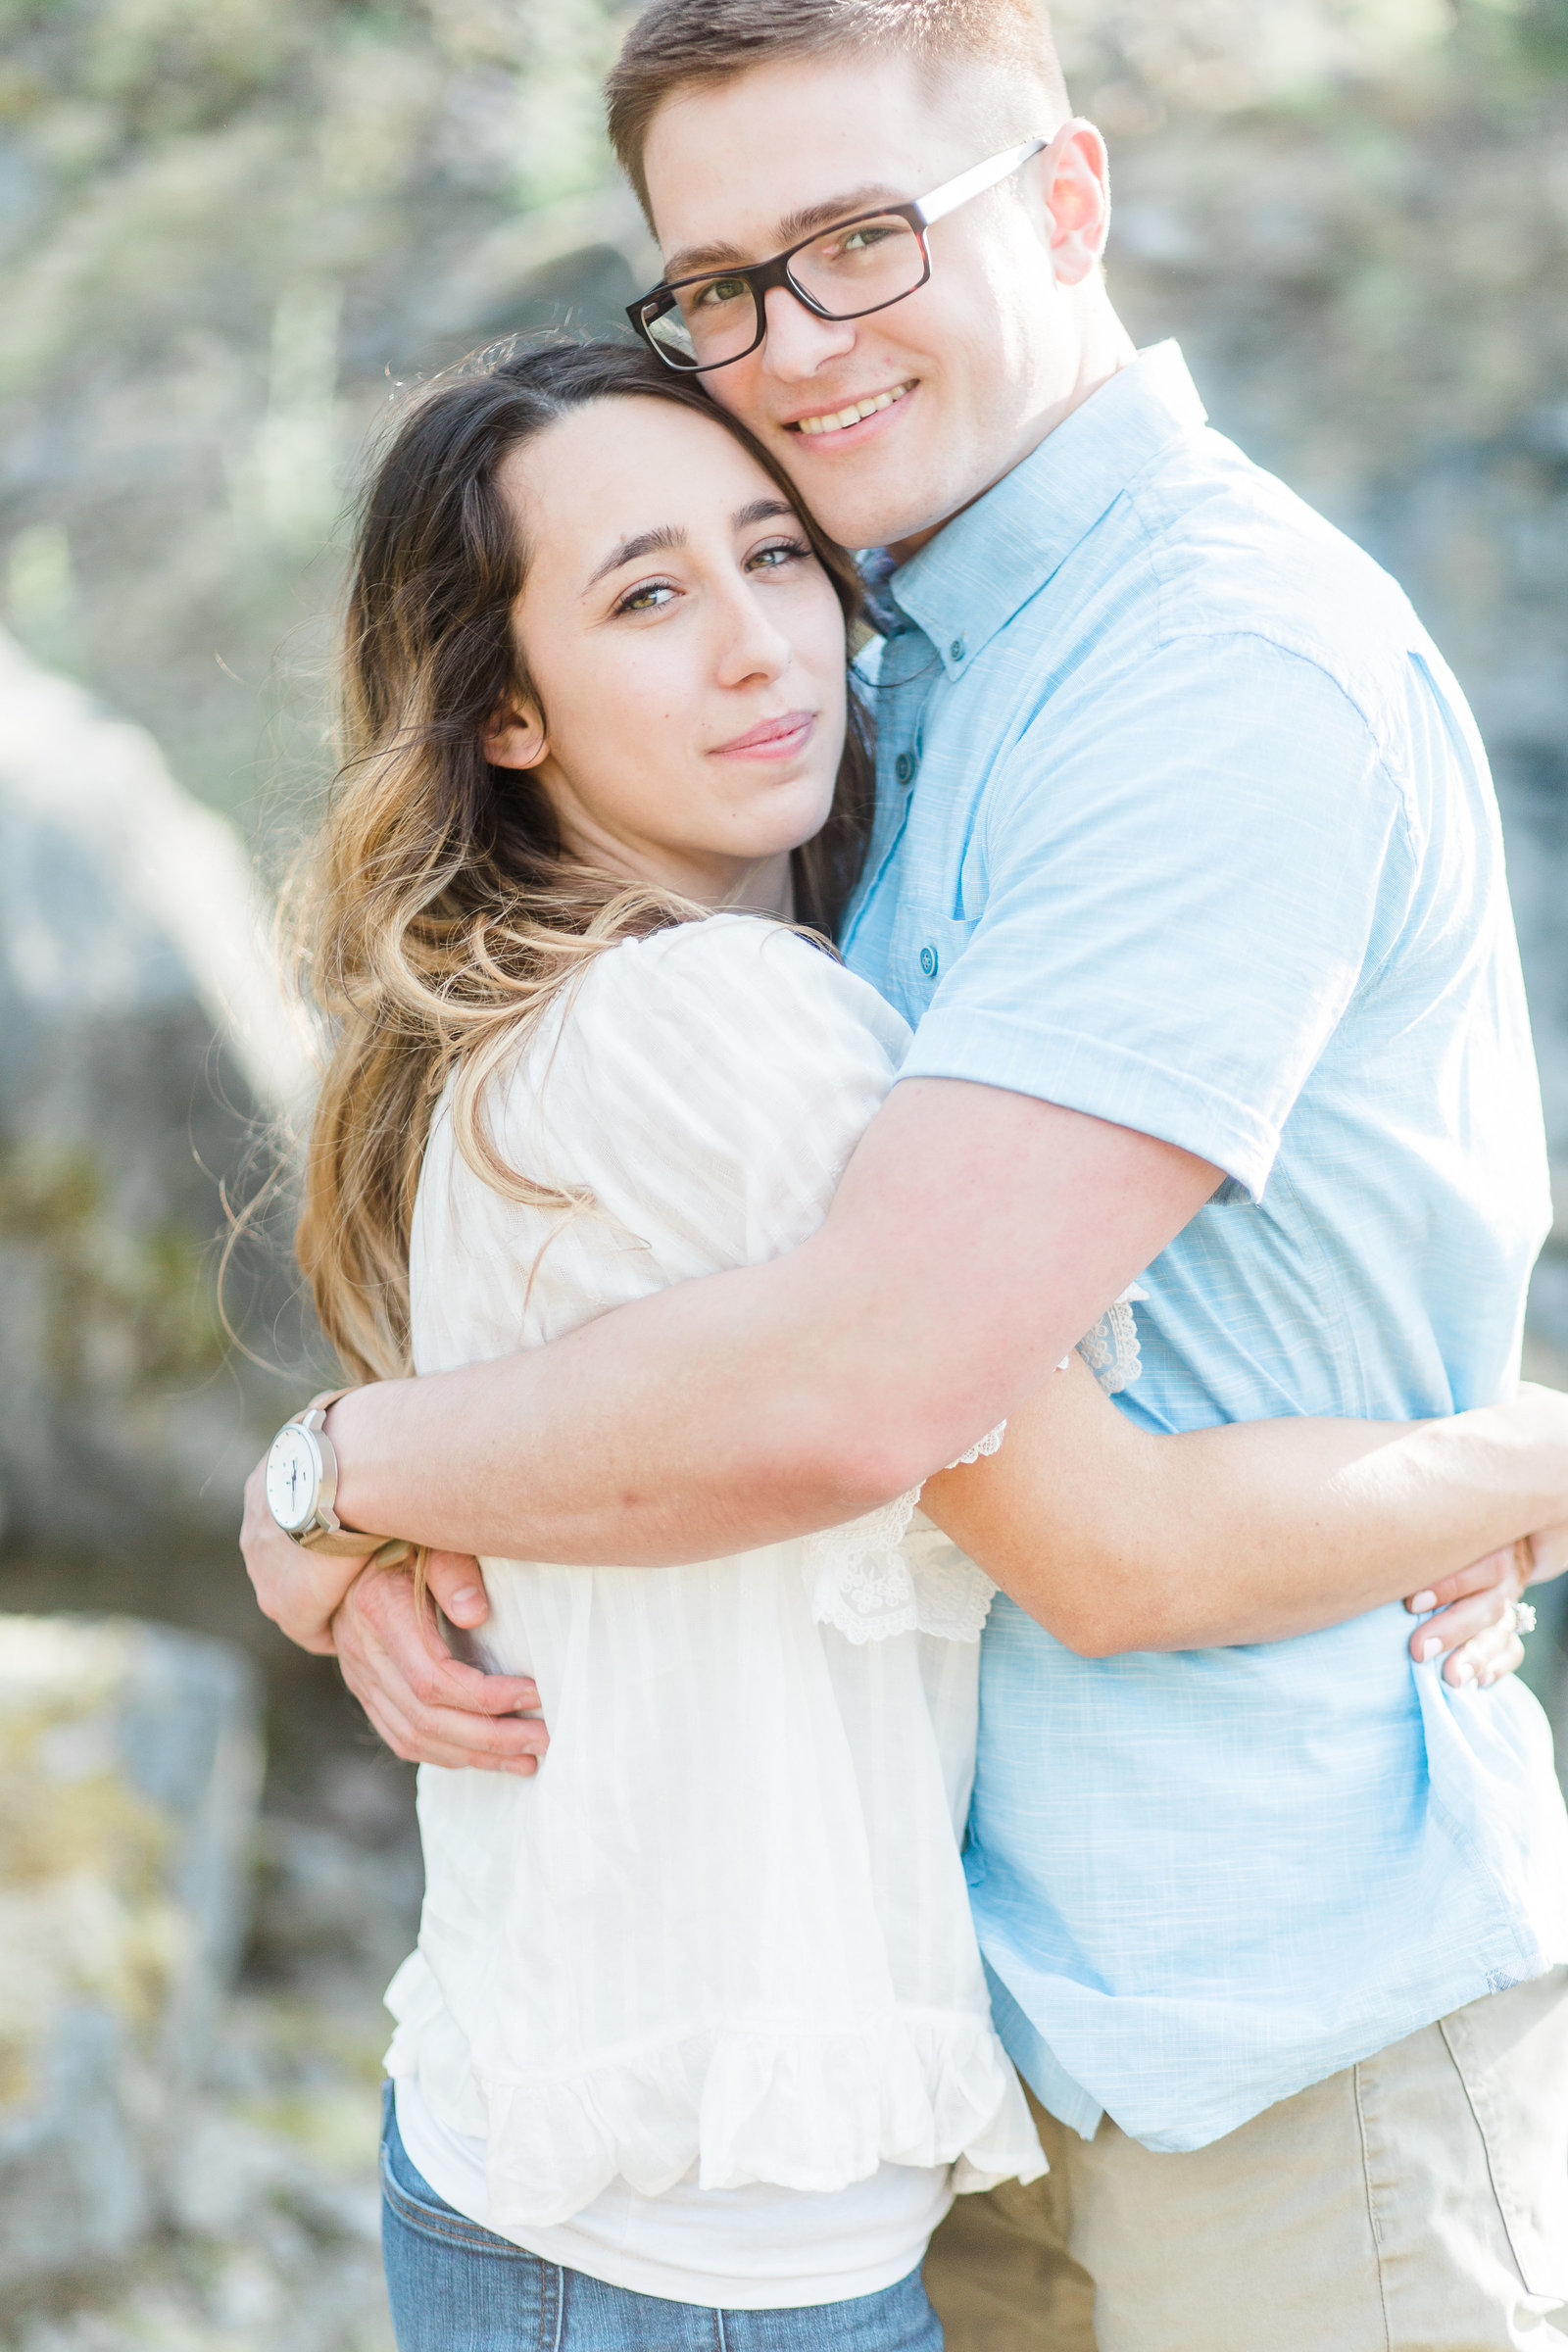 Georgia-Ruth-Photography-Columbia-Gorge-Engagements-LG-31